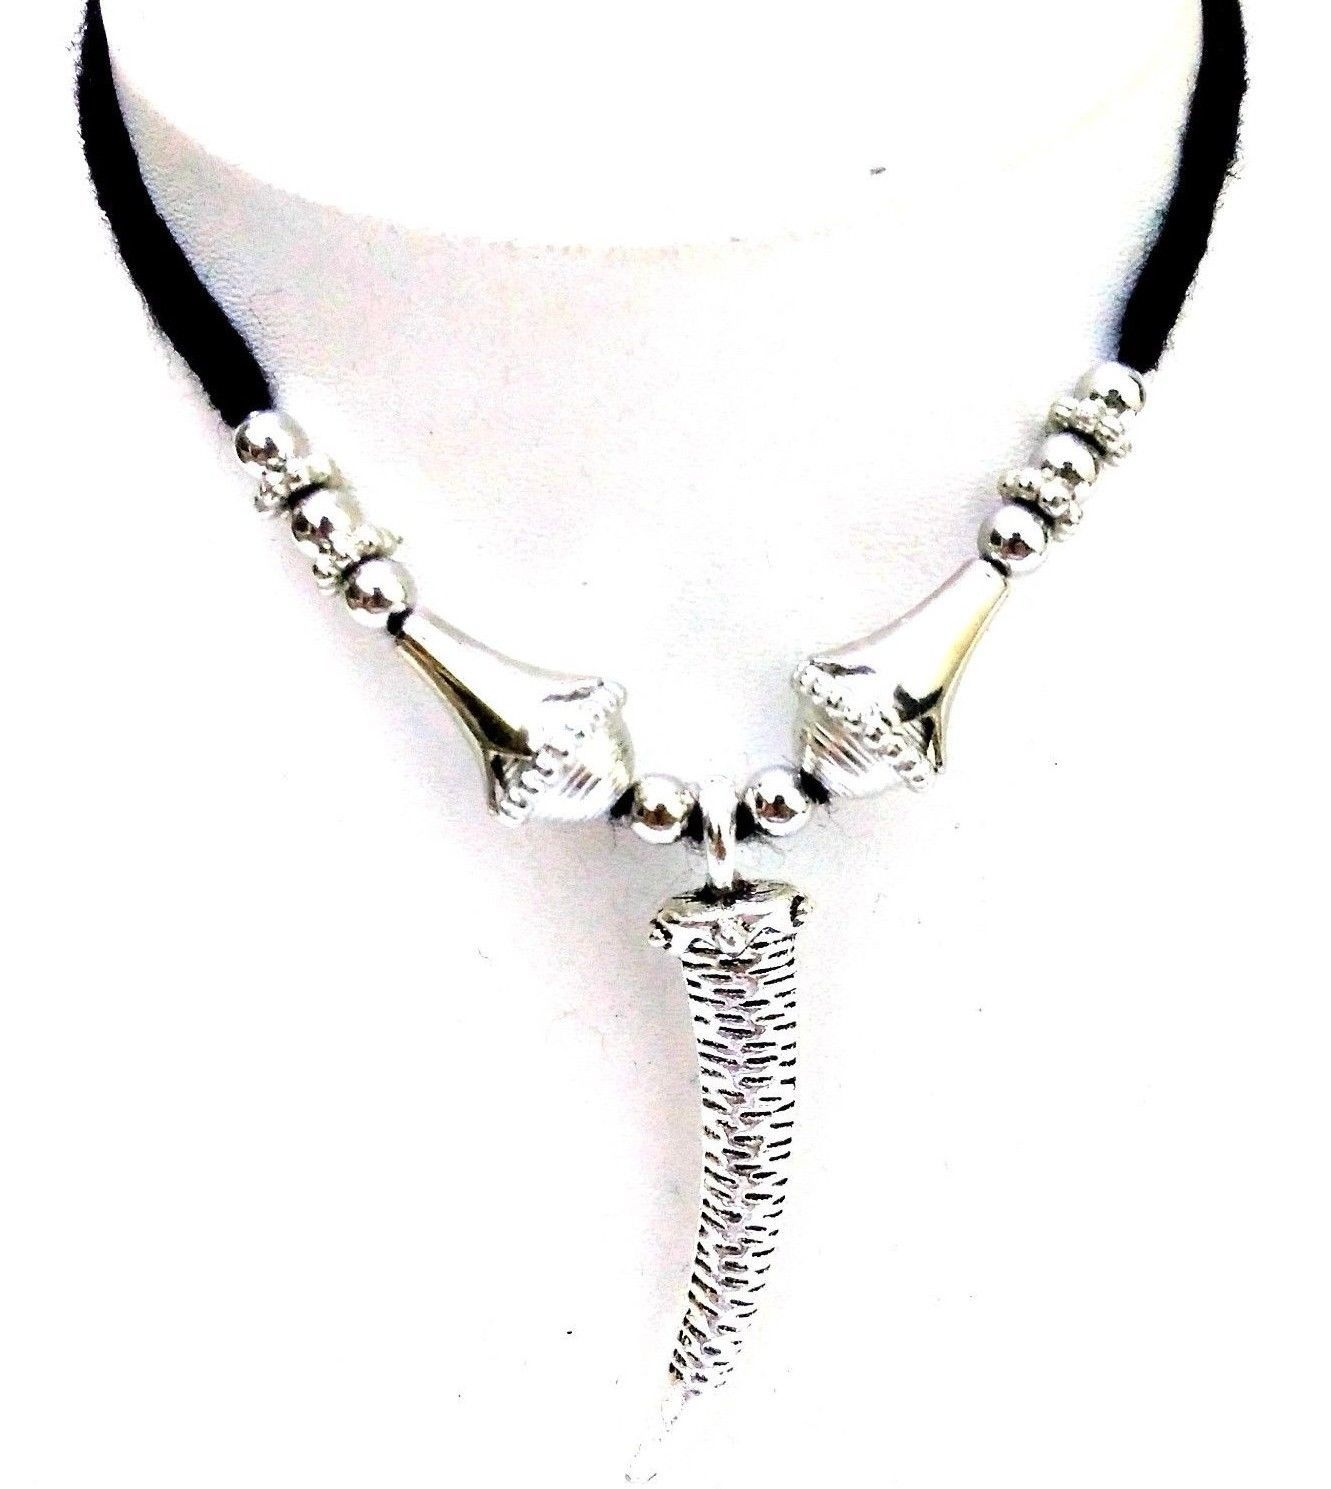 KNIFE Silver Oxidized Necklace Pendant Choker Collar Long String Jewelry 8-99